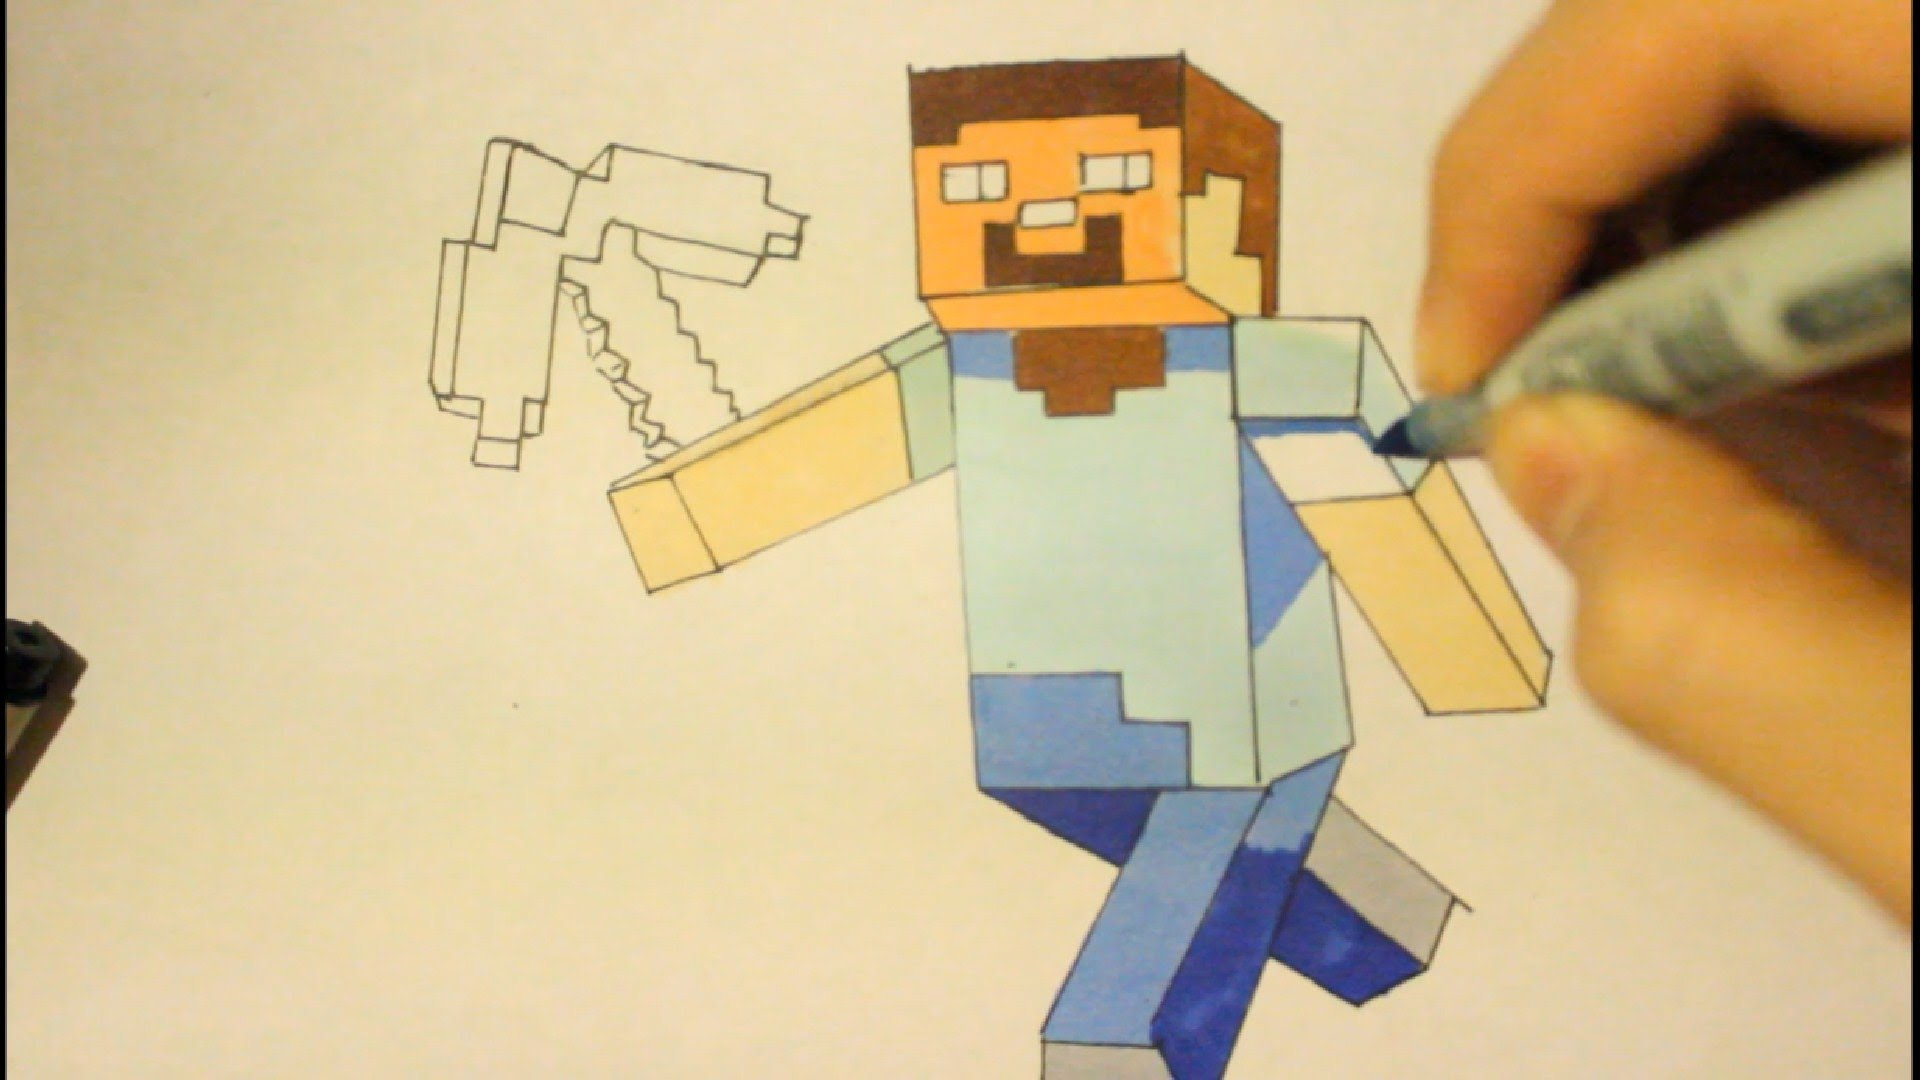 Drawn amour minecraft With By Sword Minecraft Sword